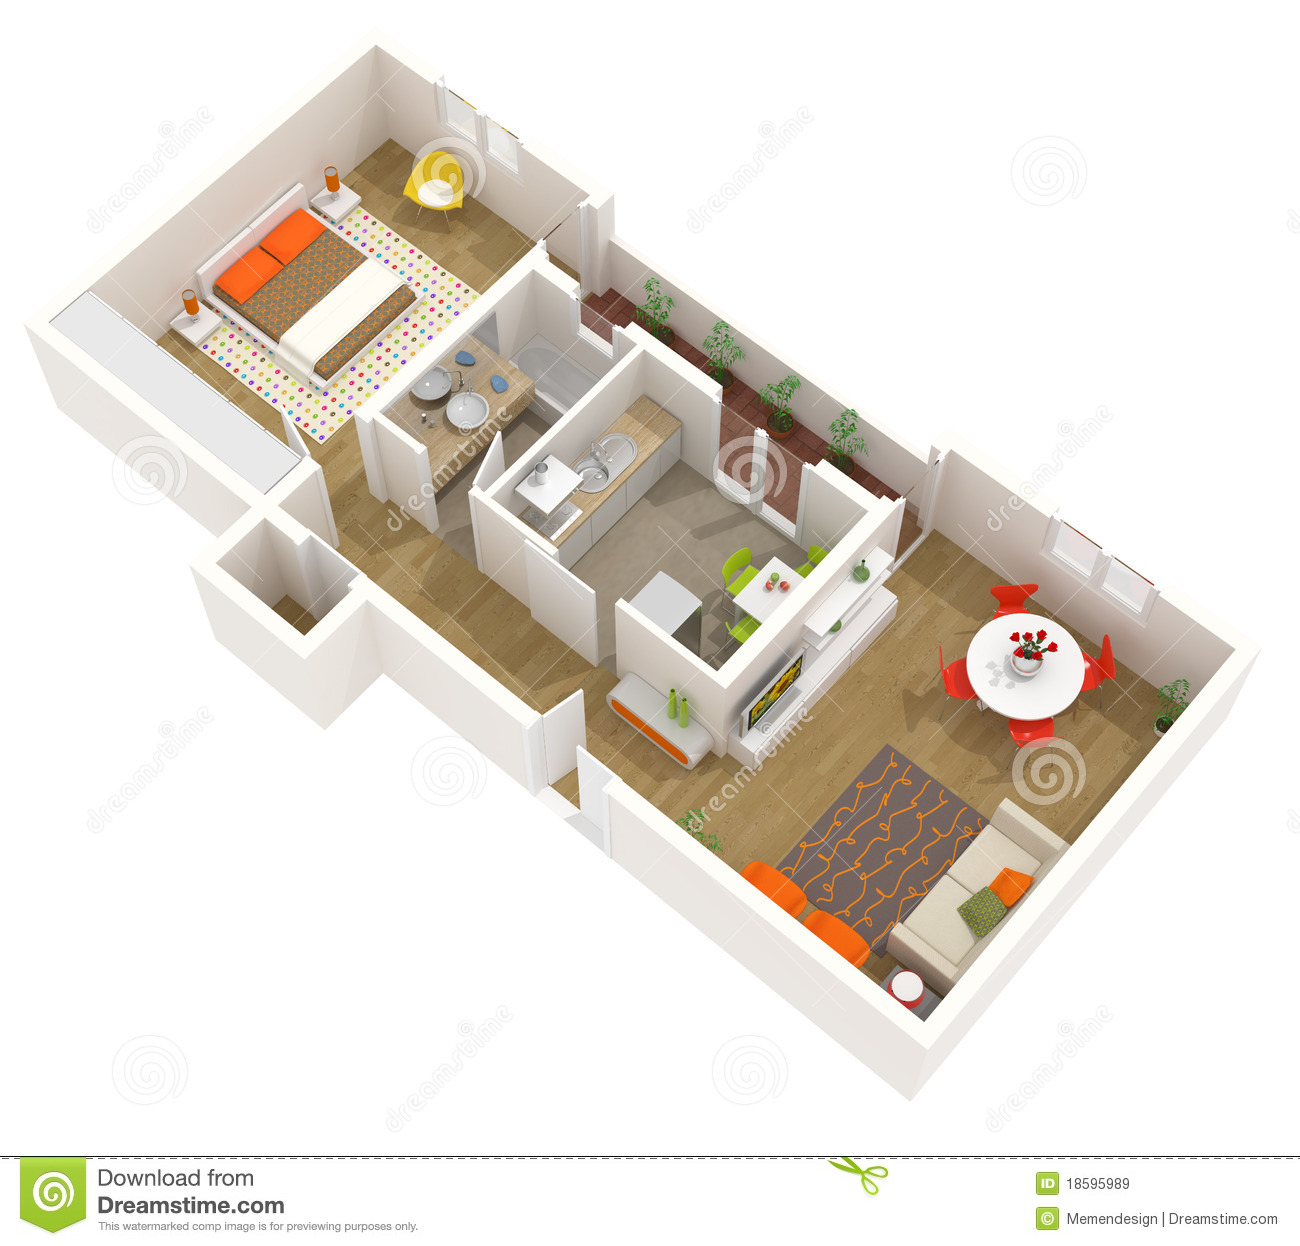 Interior Design Plans: Apartment Interior Design